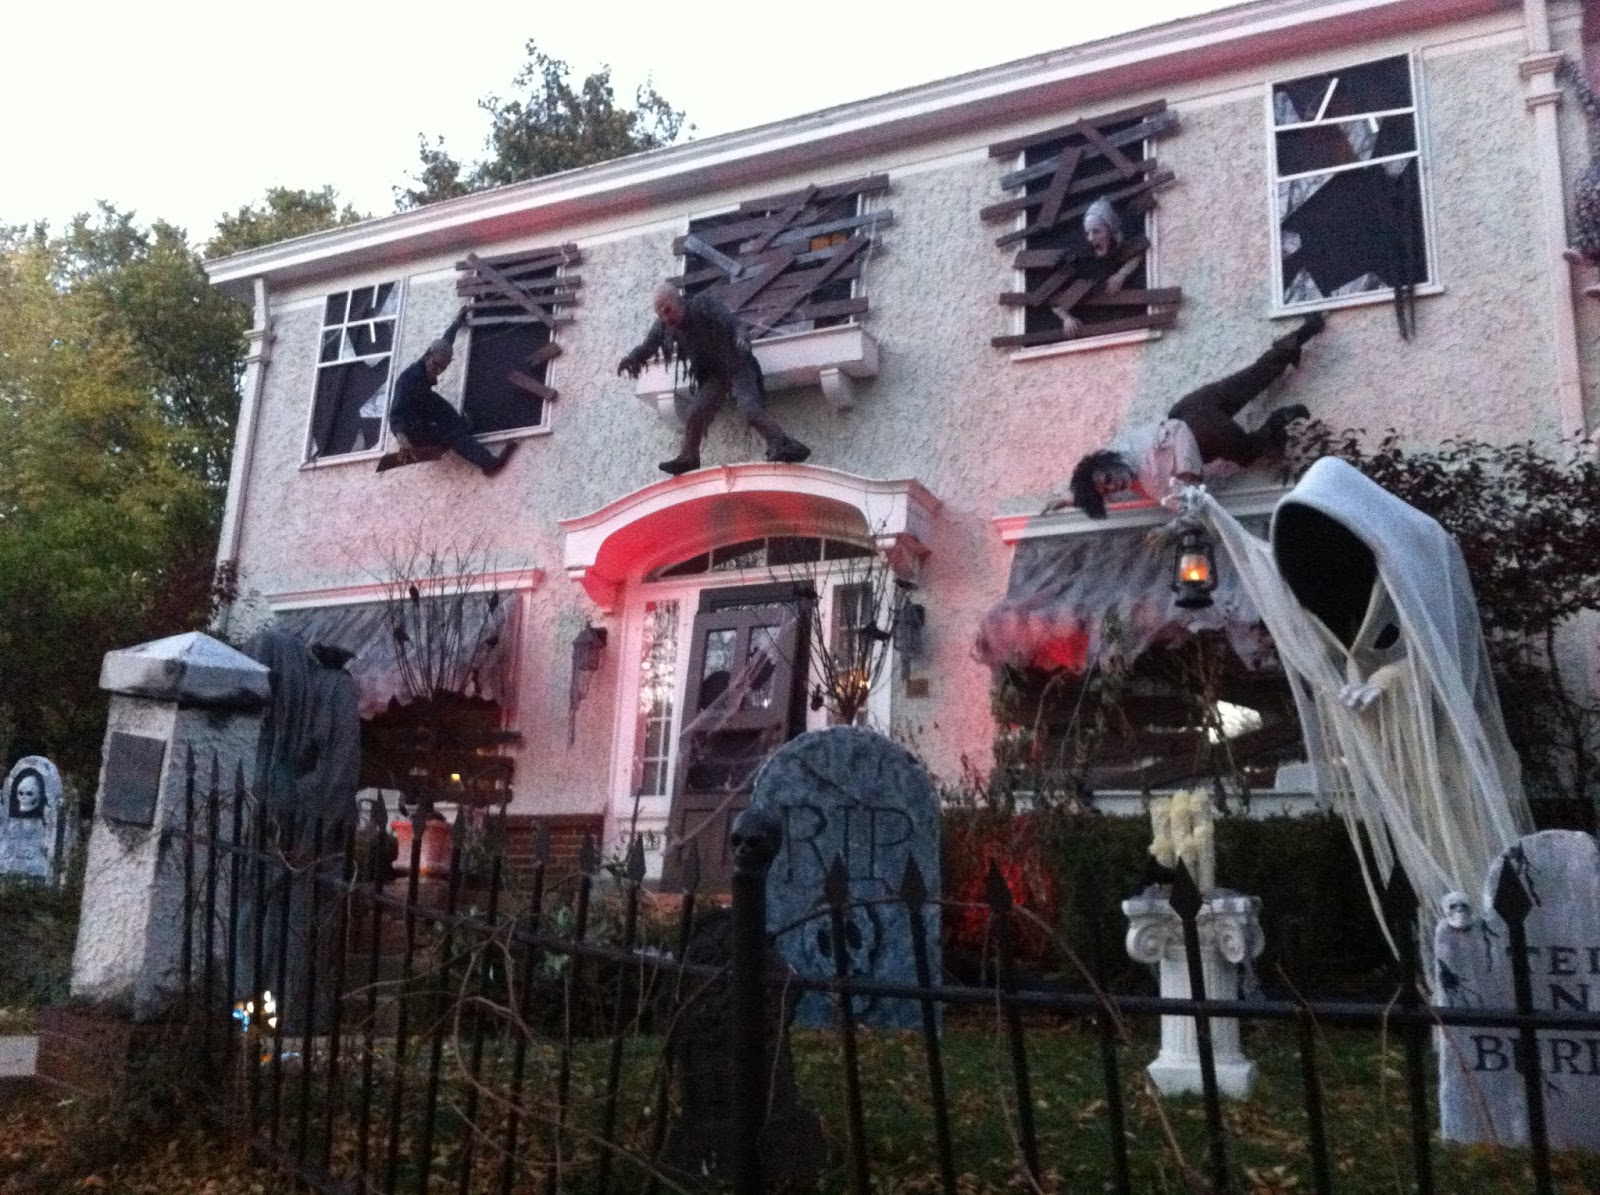 Halloween haunted house decoration ideas 2017 and images for Good themes for a haunted house